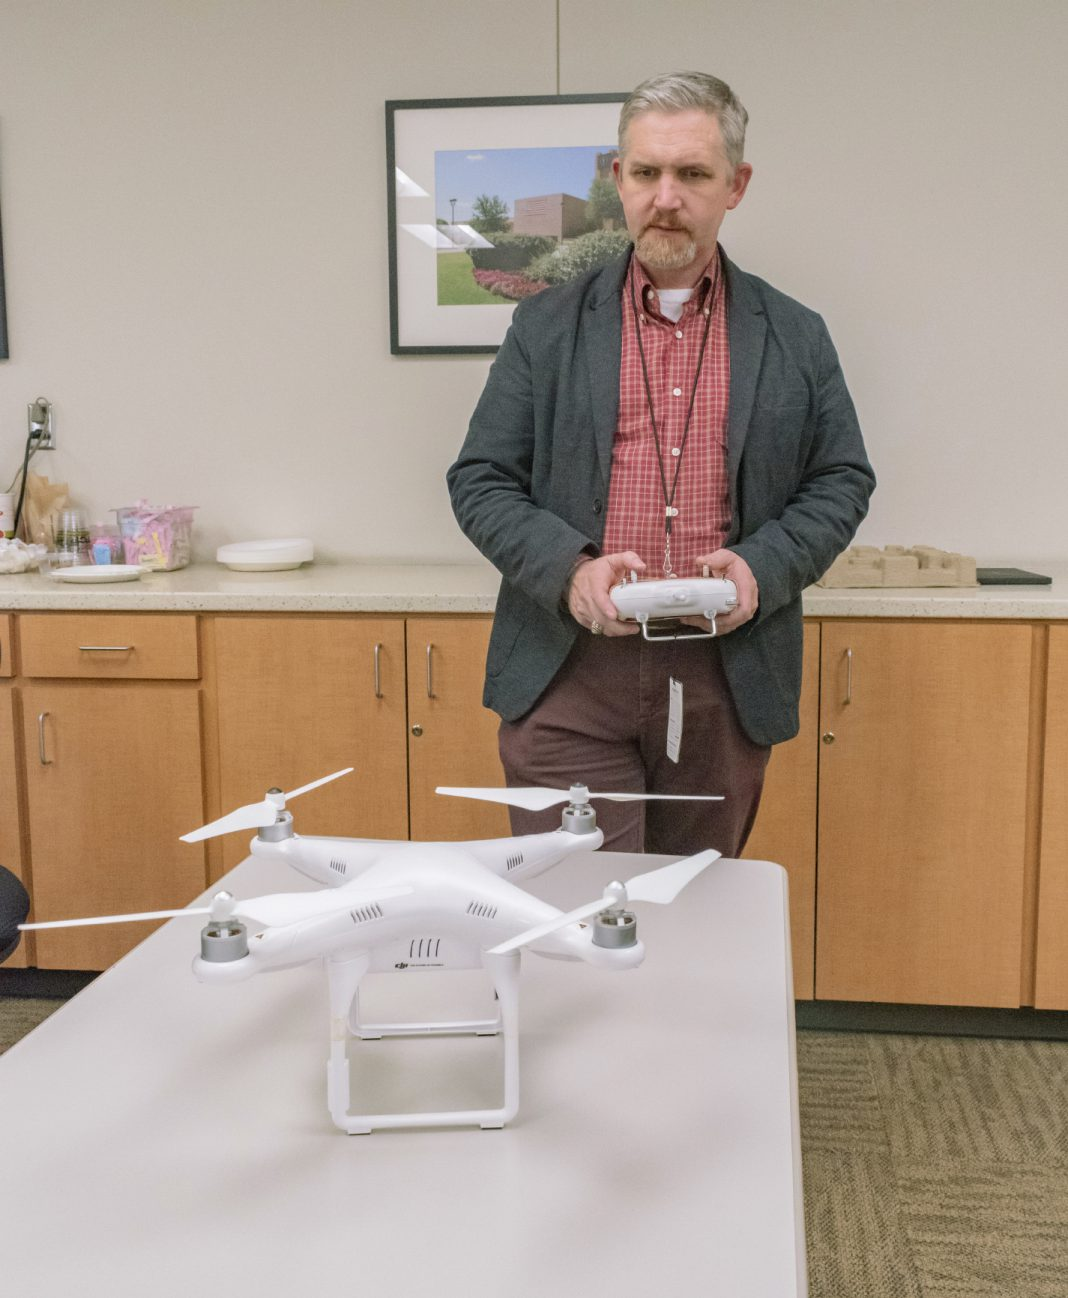 NE special projects coordinator Harry Johnson demonstrates how to operate the Phantom 2 drone which is a part of the remote pilot certification test prep course, where students can learn about regulations for drone flying on the NE and NW Campuses.